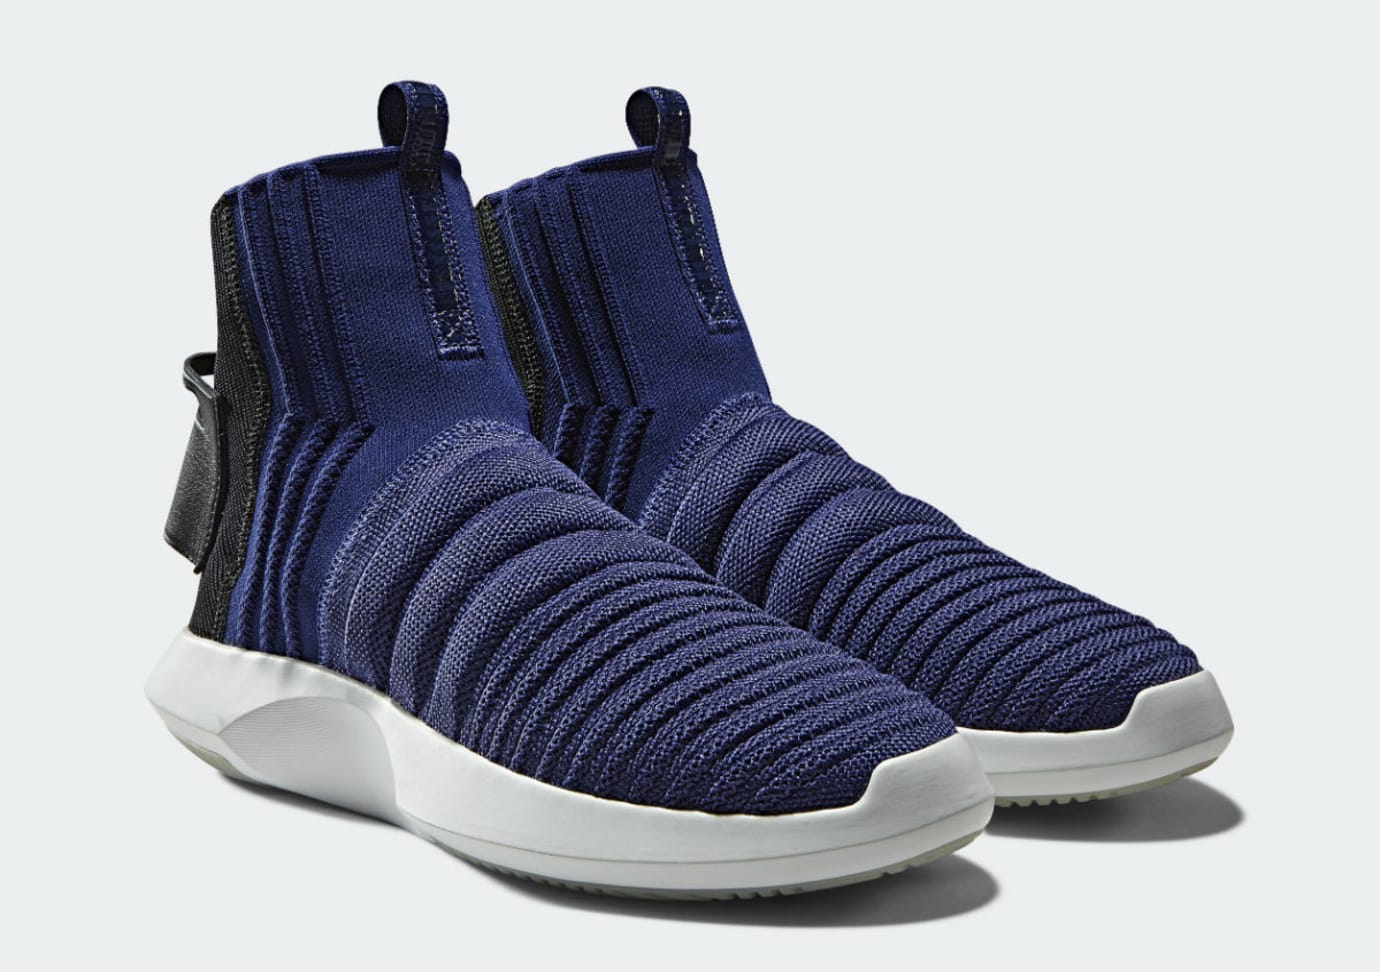 Adidas Crazy 1 ADV Sock Primeknit Real Purple Release Date CQ1011 Front